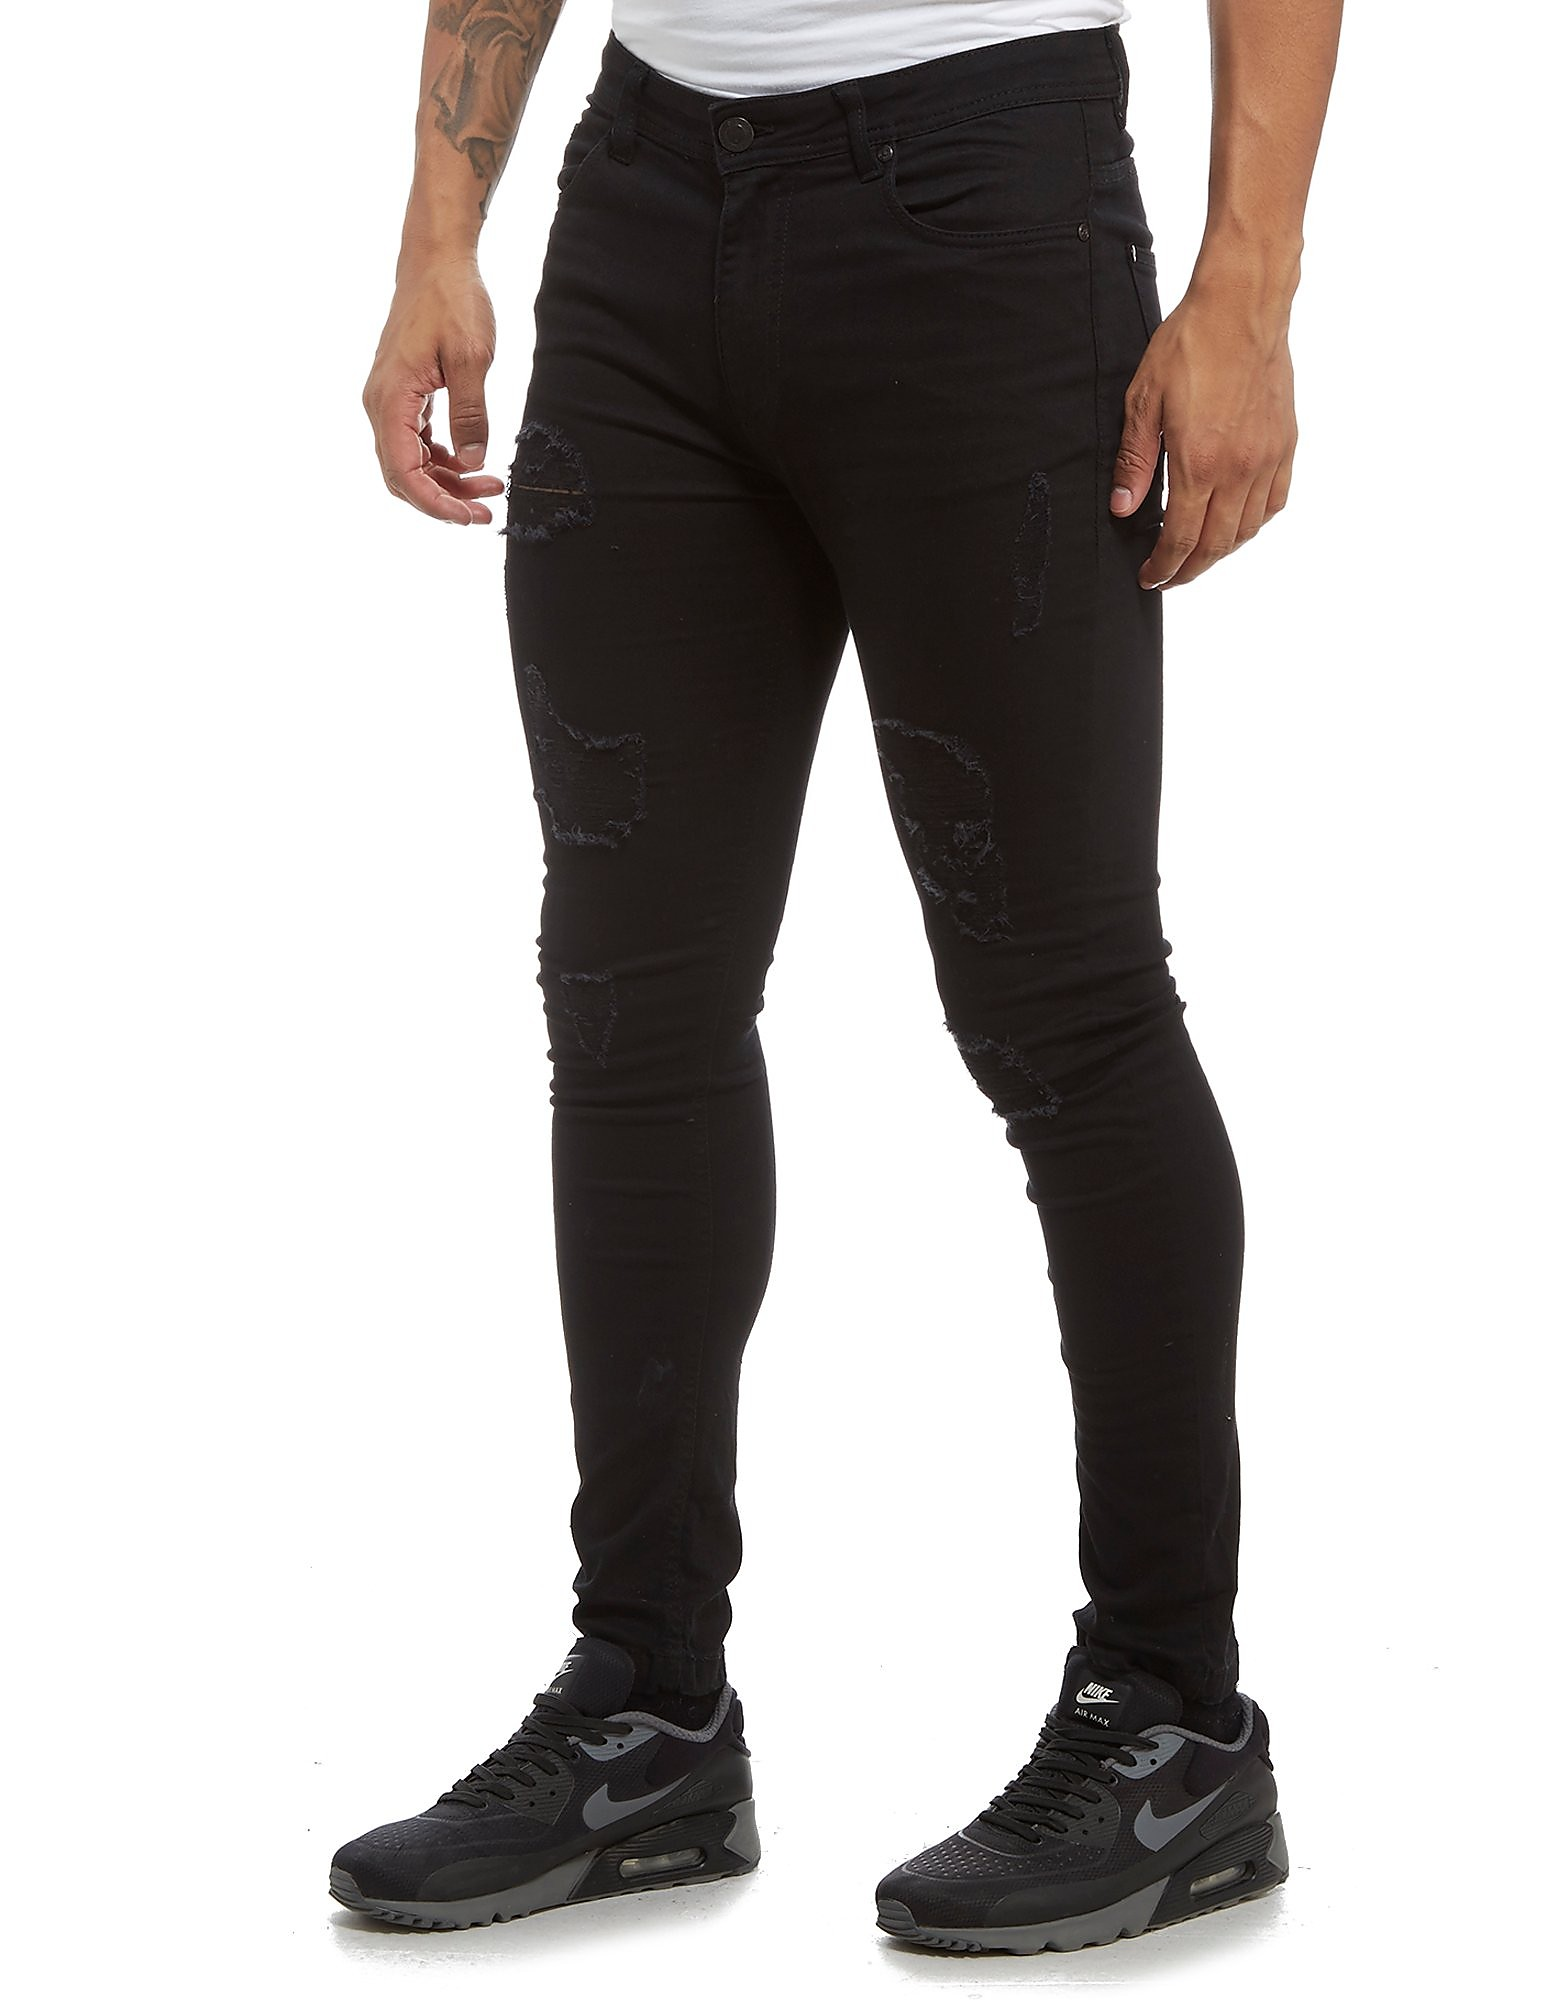 Supply & Demand Caliber Jeans - Only at JD, Black